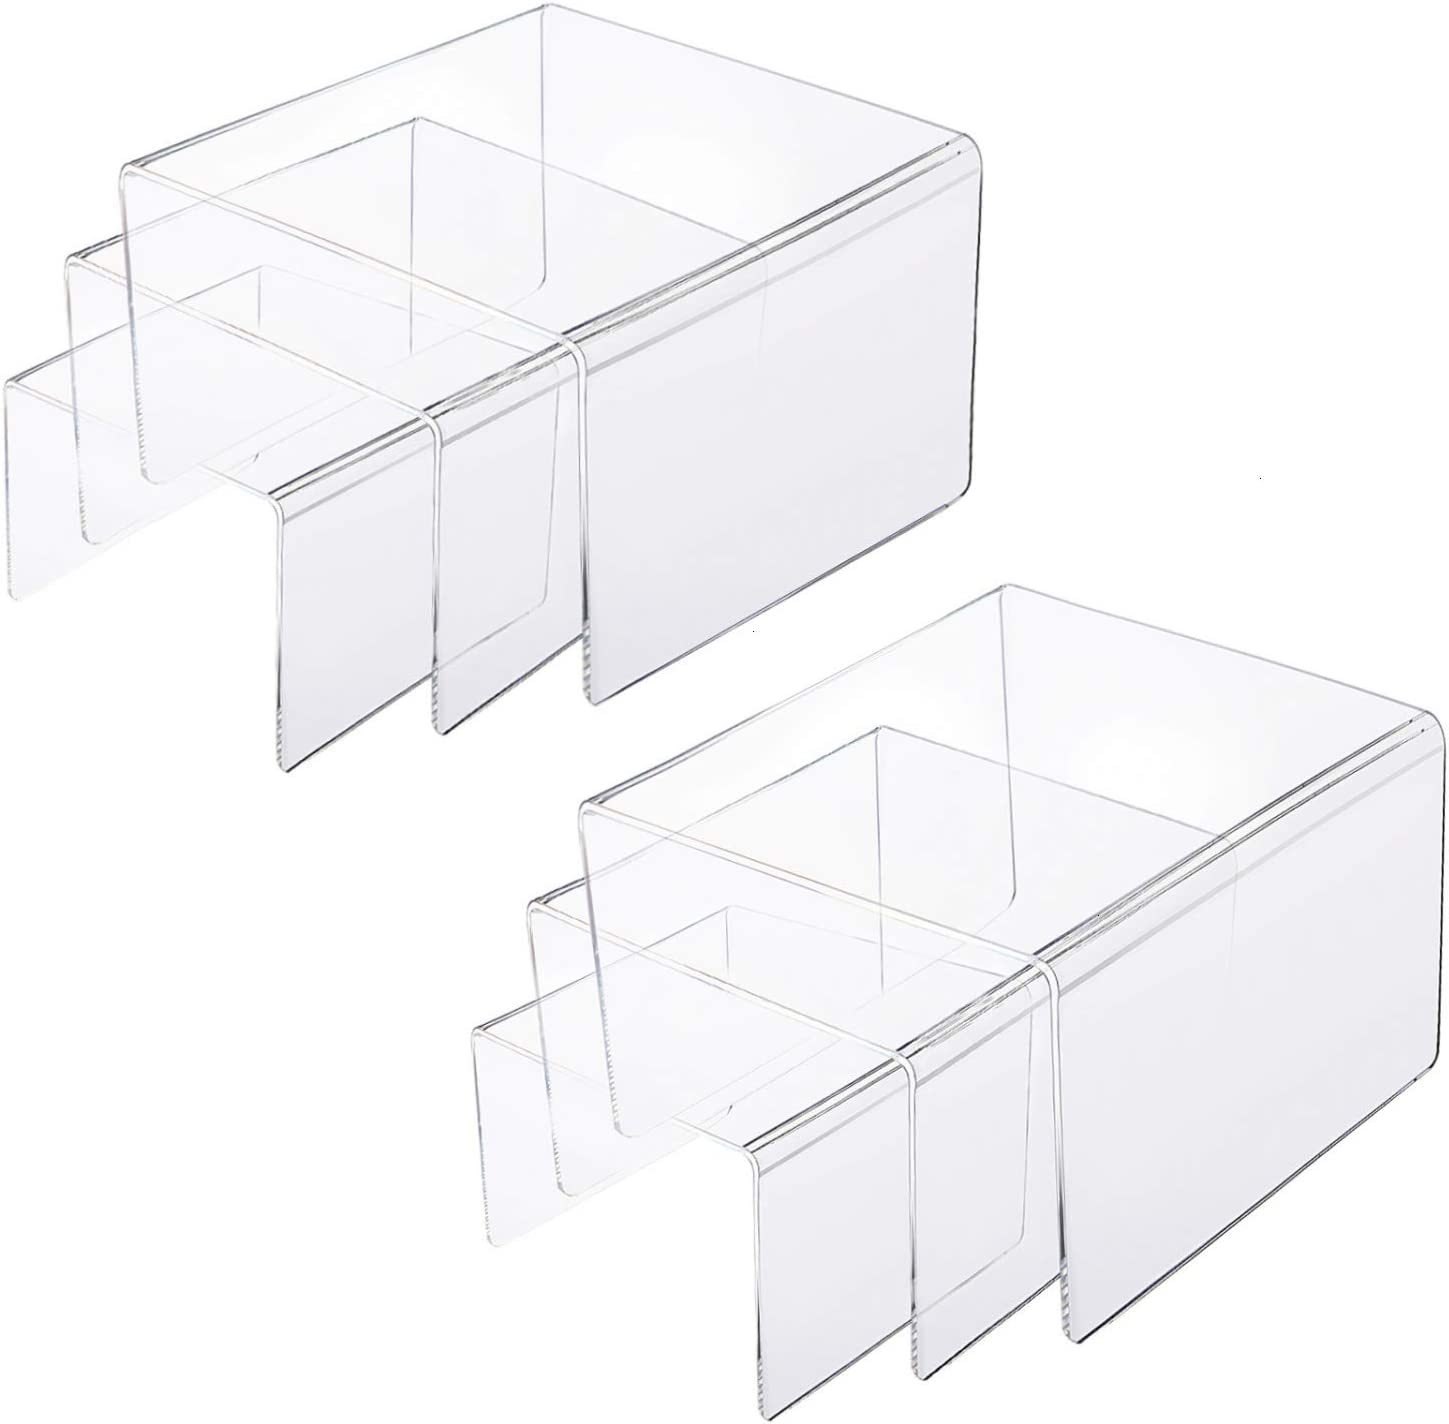 """Gonioa 2 Set Display Risers Clear Acrylic Riser Shelf Showcase Fixtures Jewelry Collectibles Display Stands for Amiibo Pop Figures,Cake Stands for Candy Dessert Table Decorations-3""""x4""""x5"""" (6pcs)"""